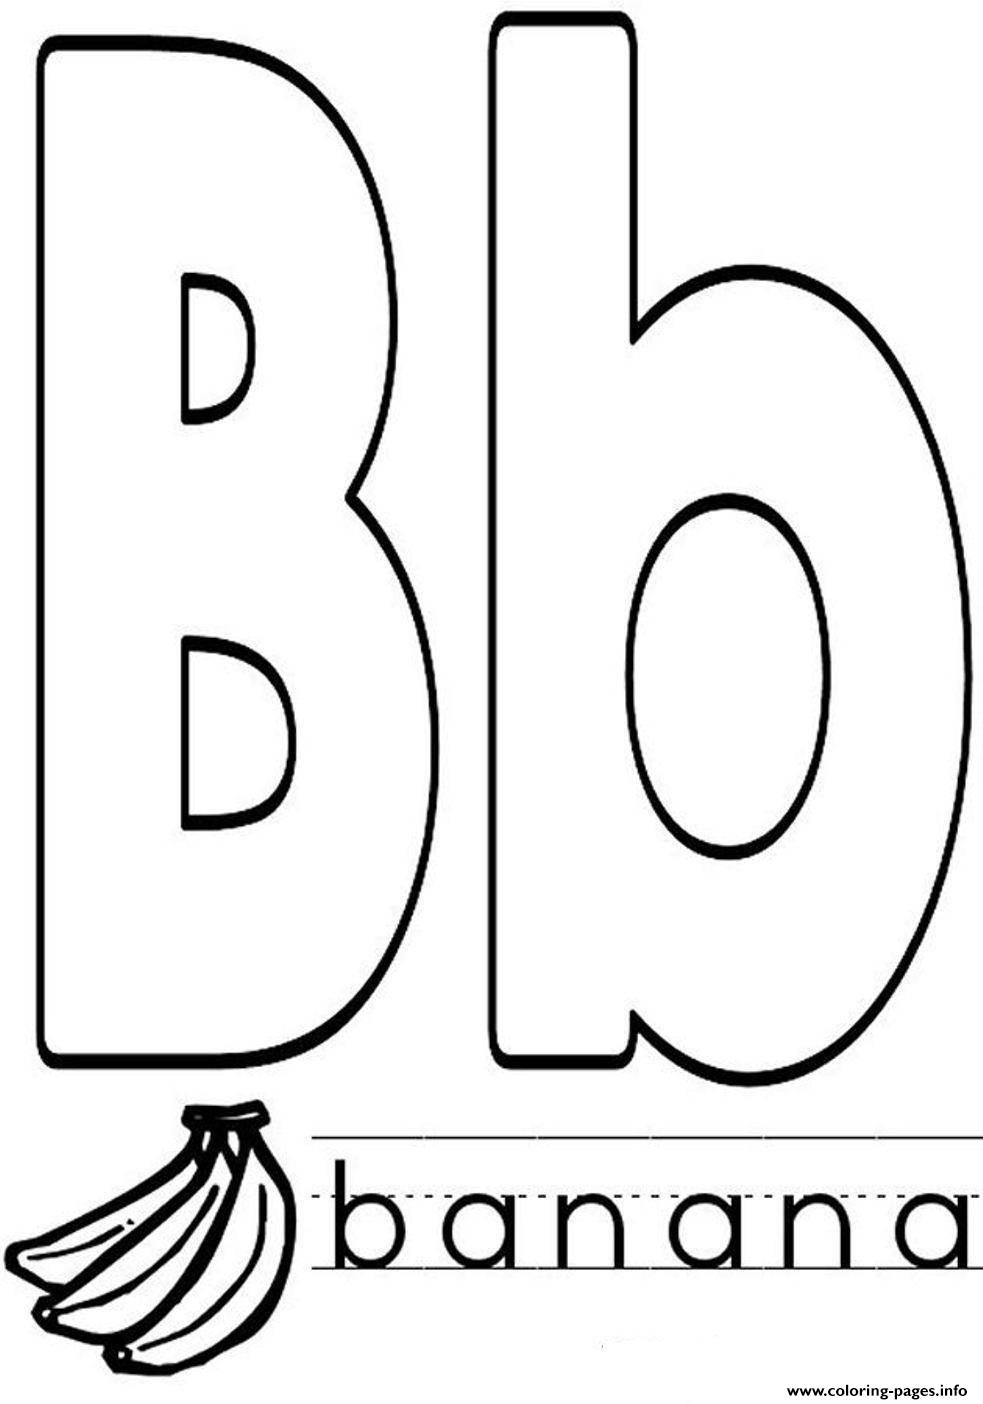 Banana In B Word Alphabet S1d7c coloring pages